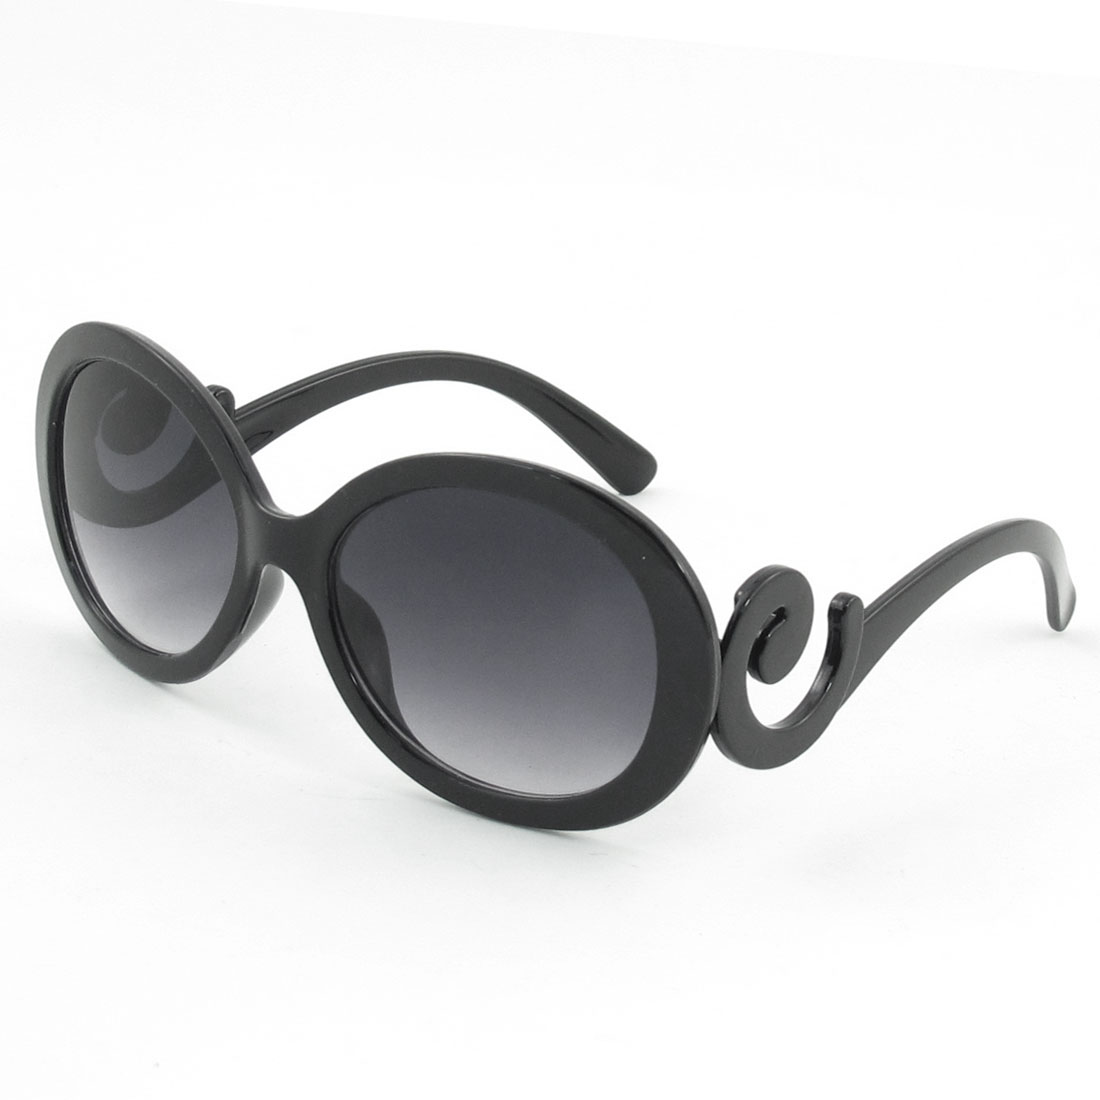 Black Plastic Full Frame Swirl Temple Wide Arms Sunglasses for Woman